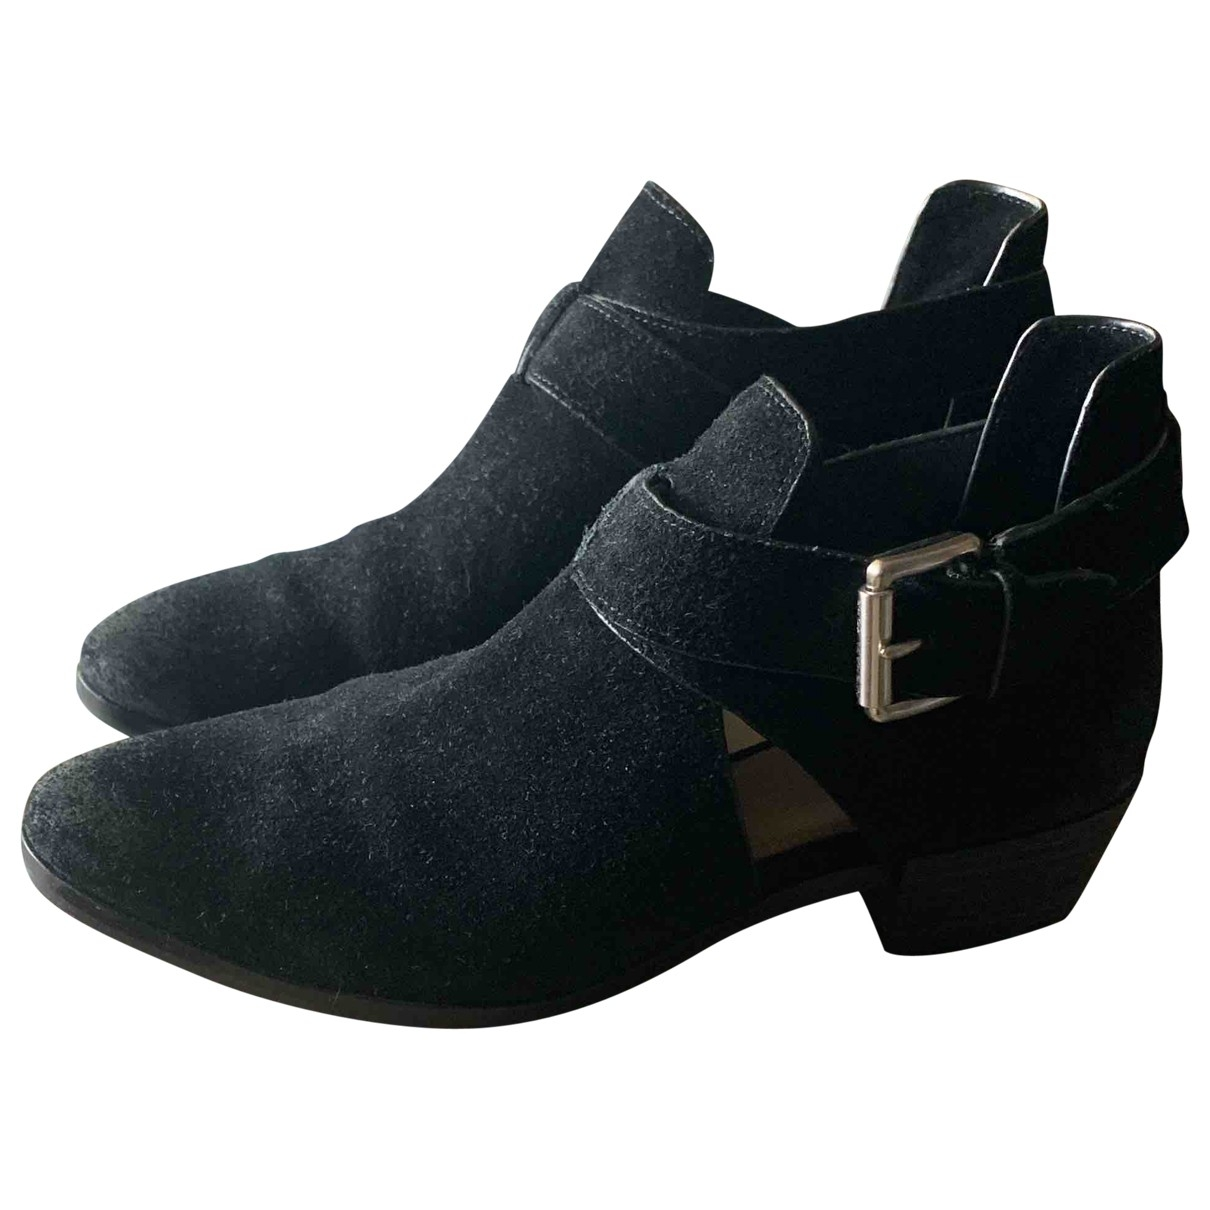 Michael Kors \N Black Suede Ankle boots for Women 38 EU